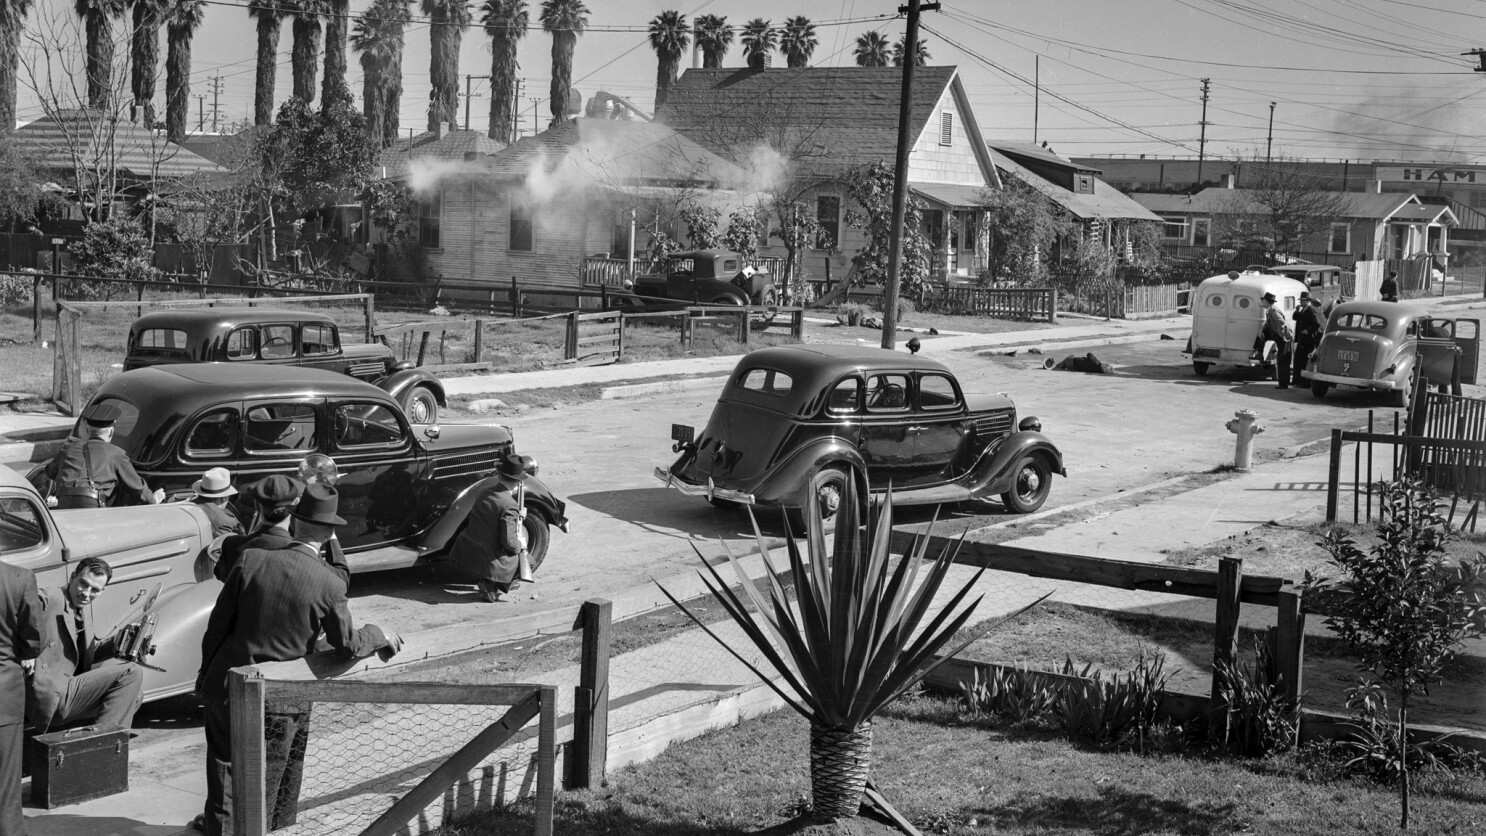 From the Archives: 1938 police shootout - Los Angeles Times